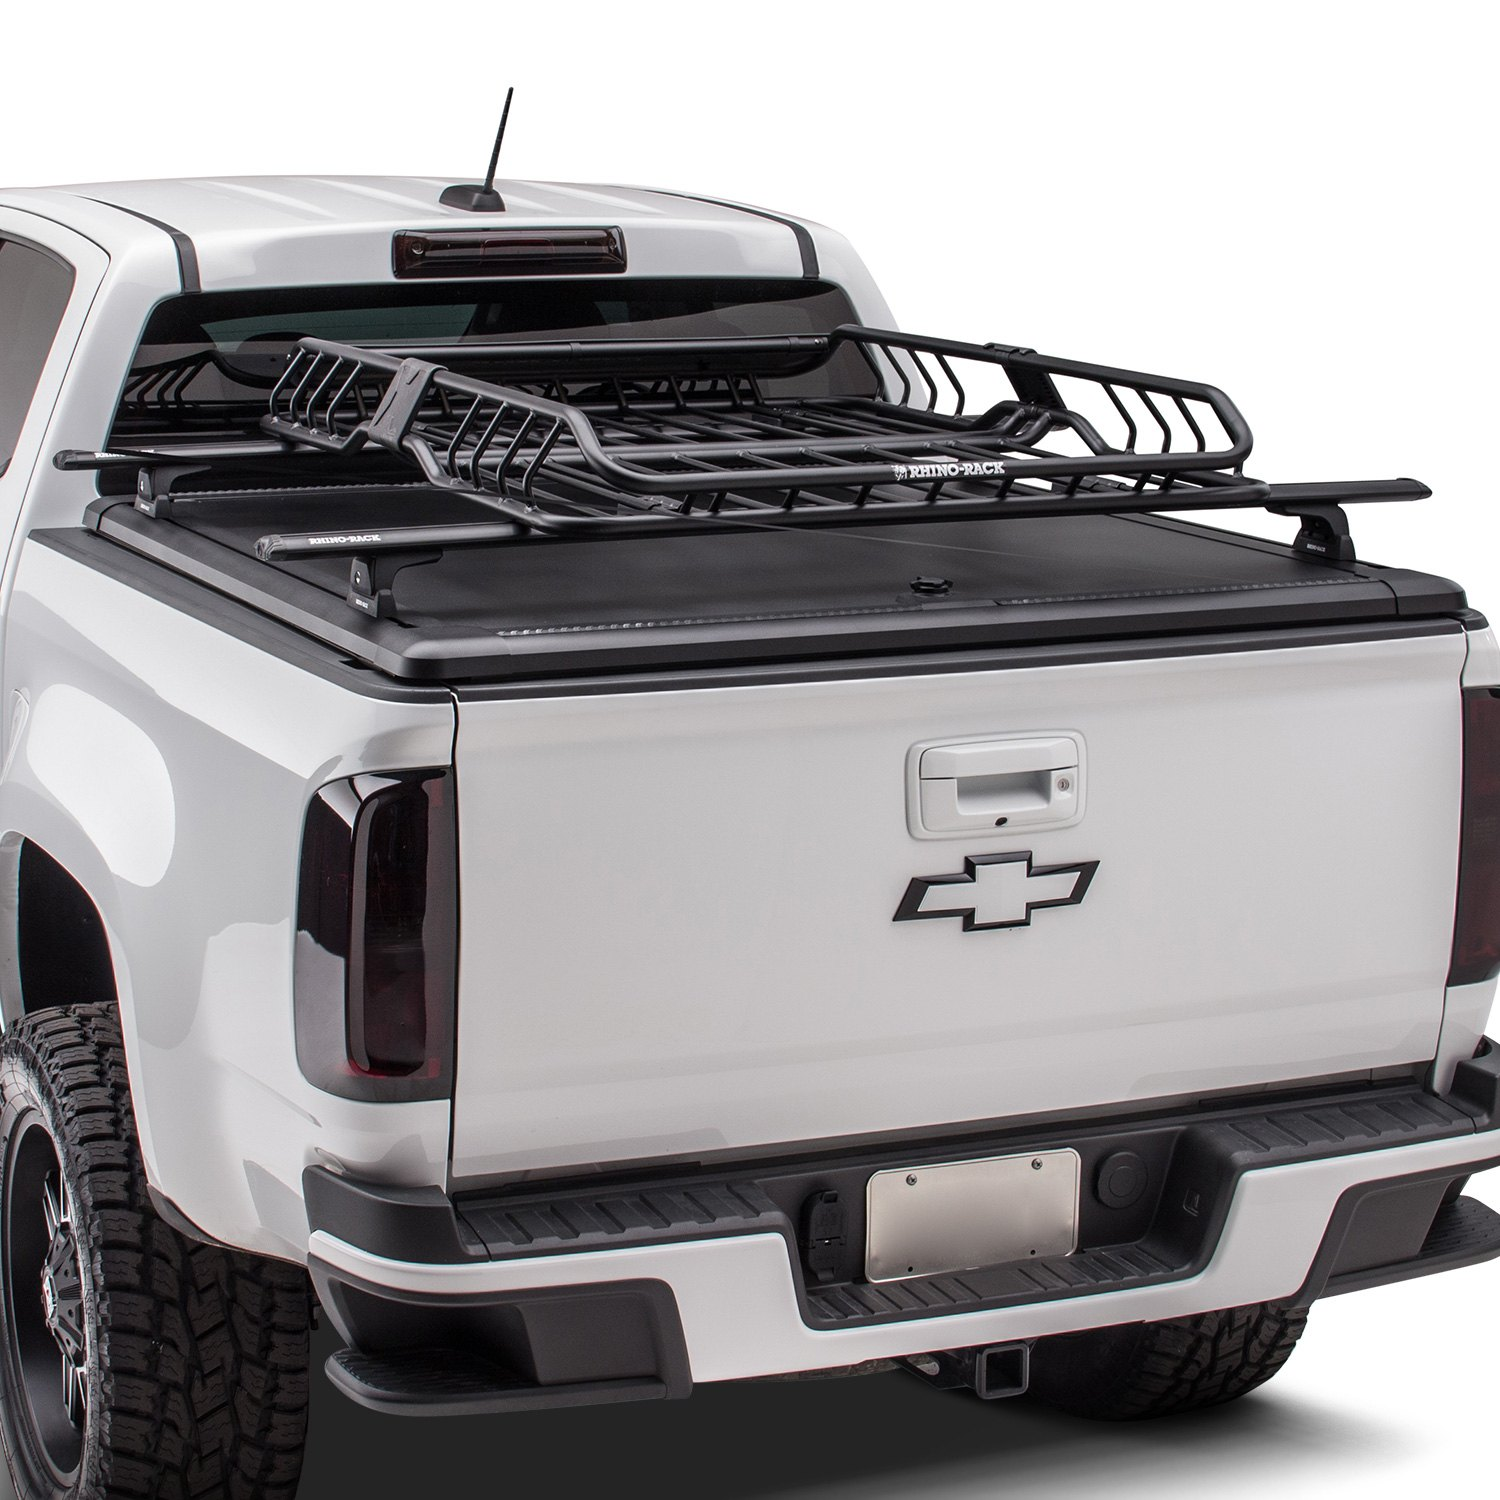 ridgelander lg cover undercover toyota tacoma covers tonneau item bed